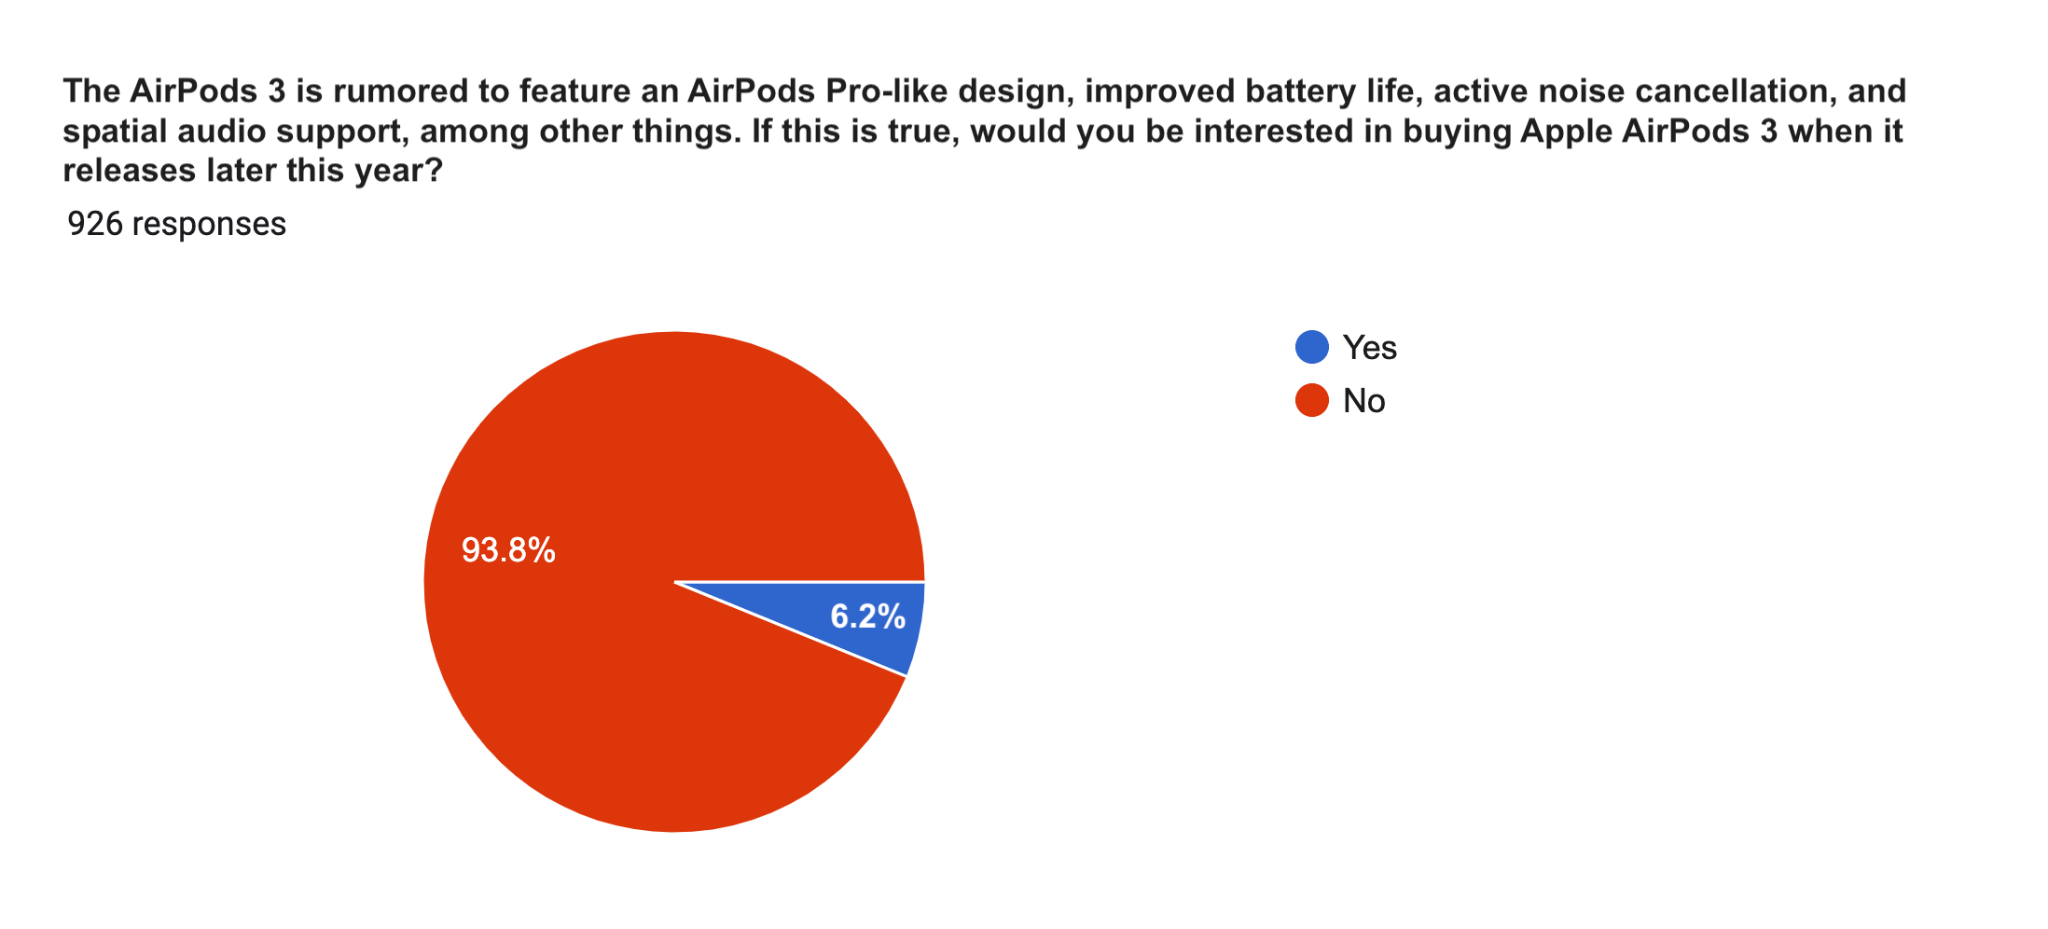 Would you be interested in buying AirPods 3?